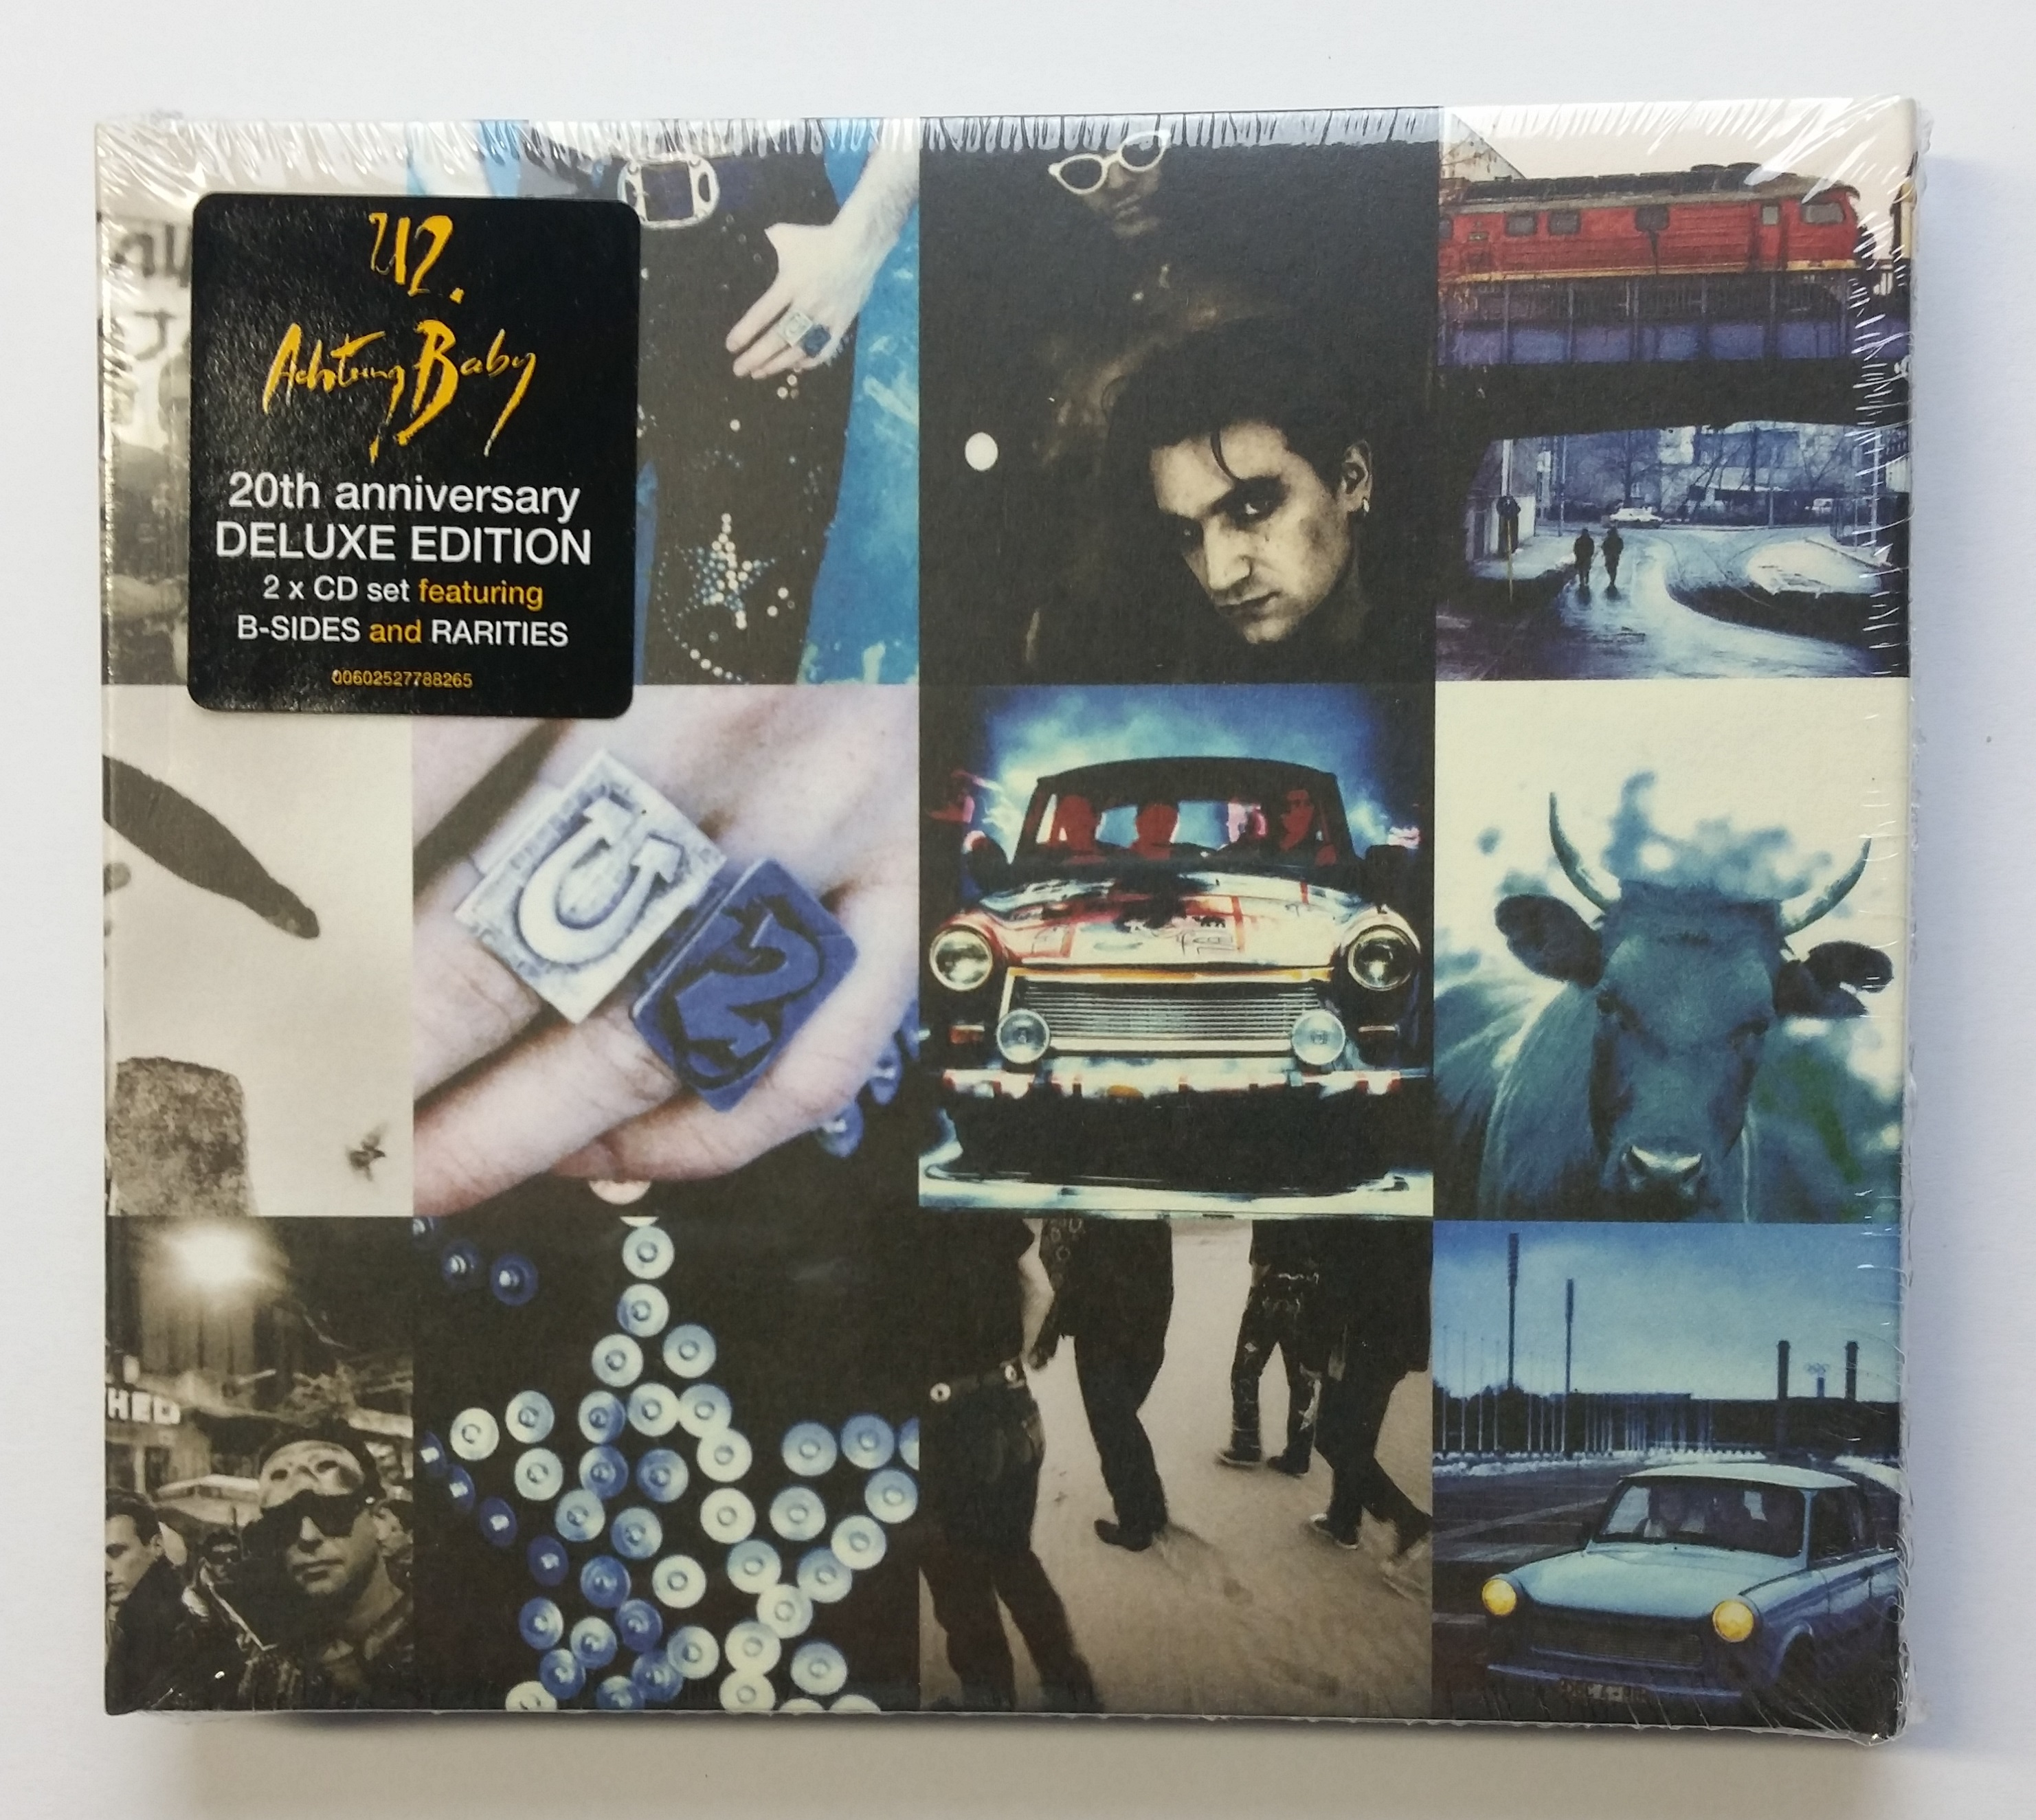 U2 Achtung Baby 20th Anniversary - Remastered Deluxe Edition